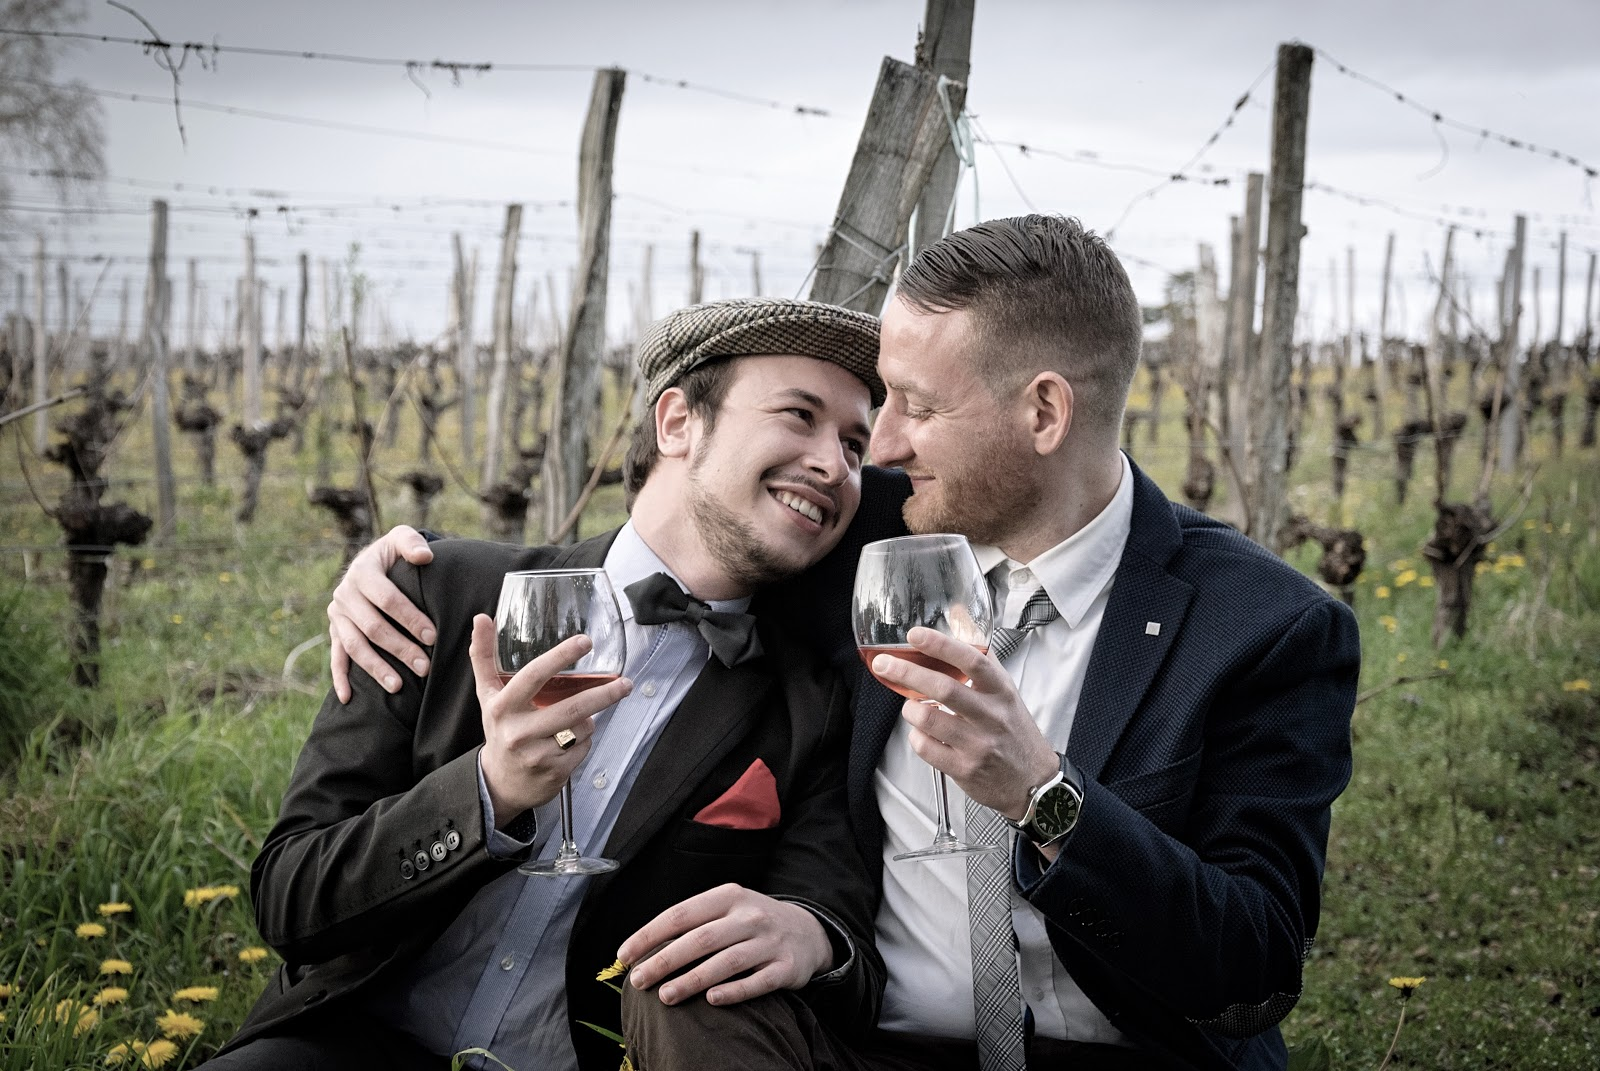 Two men in their 40s enjoy a date at a vineyard.